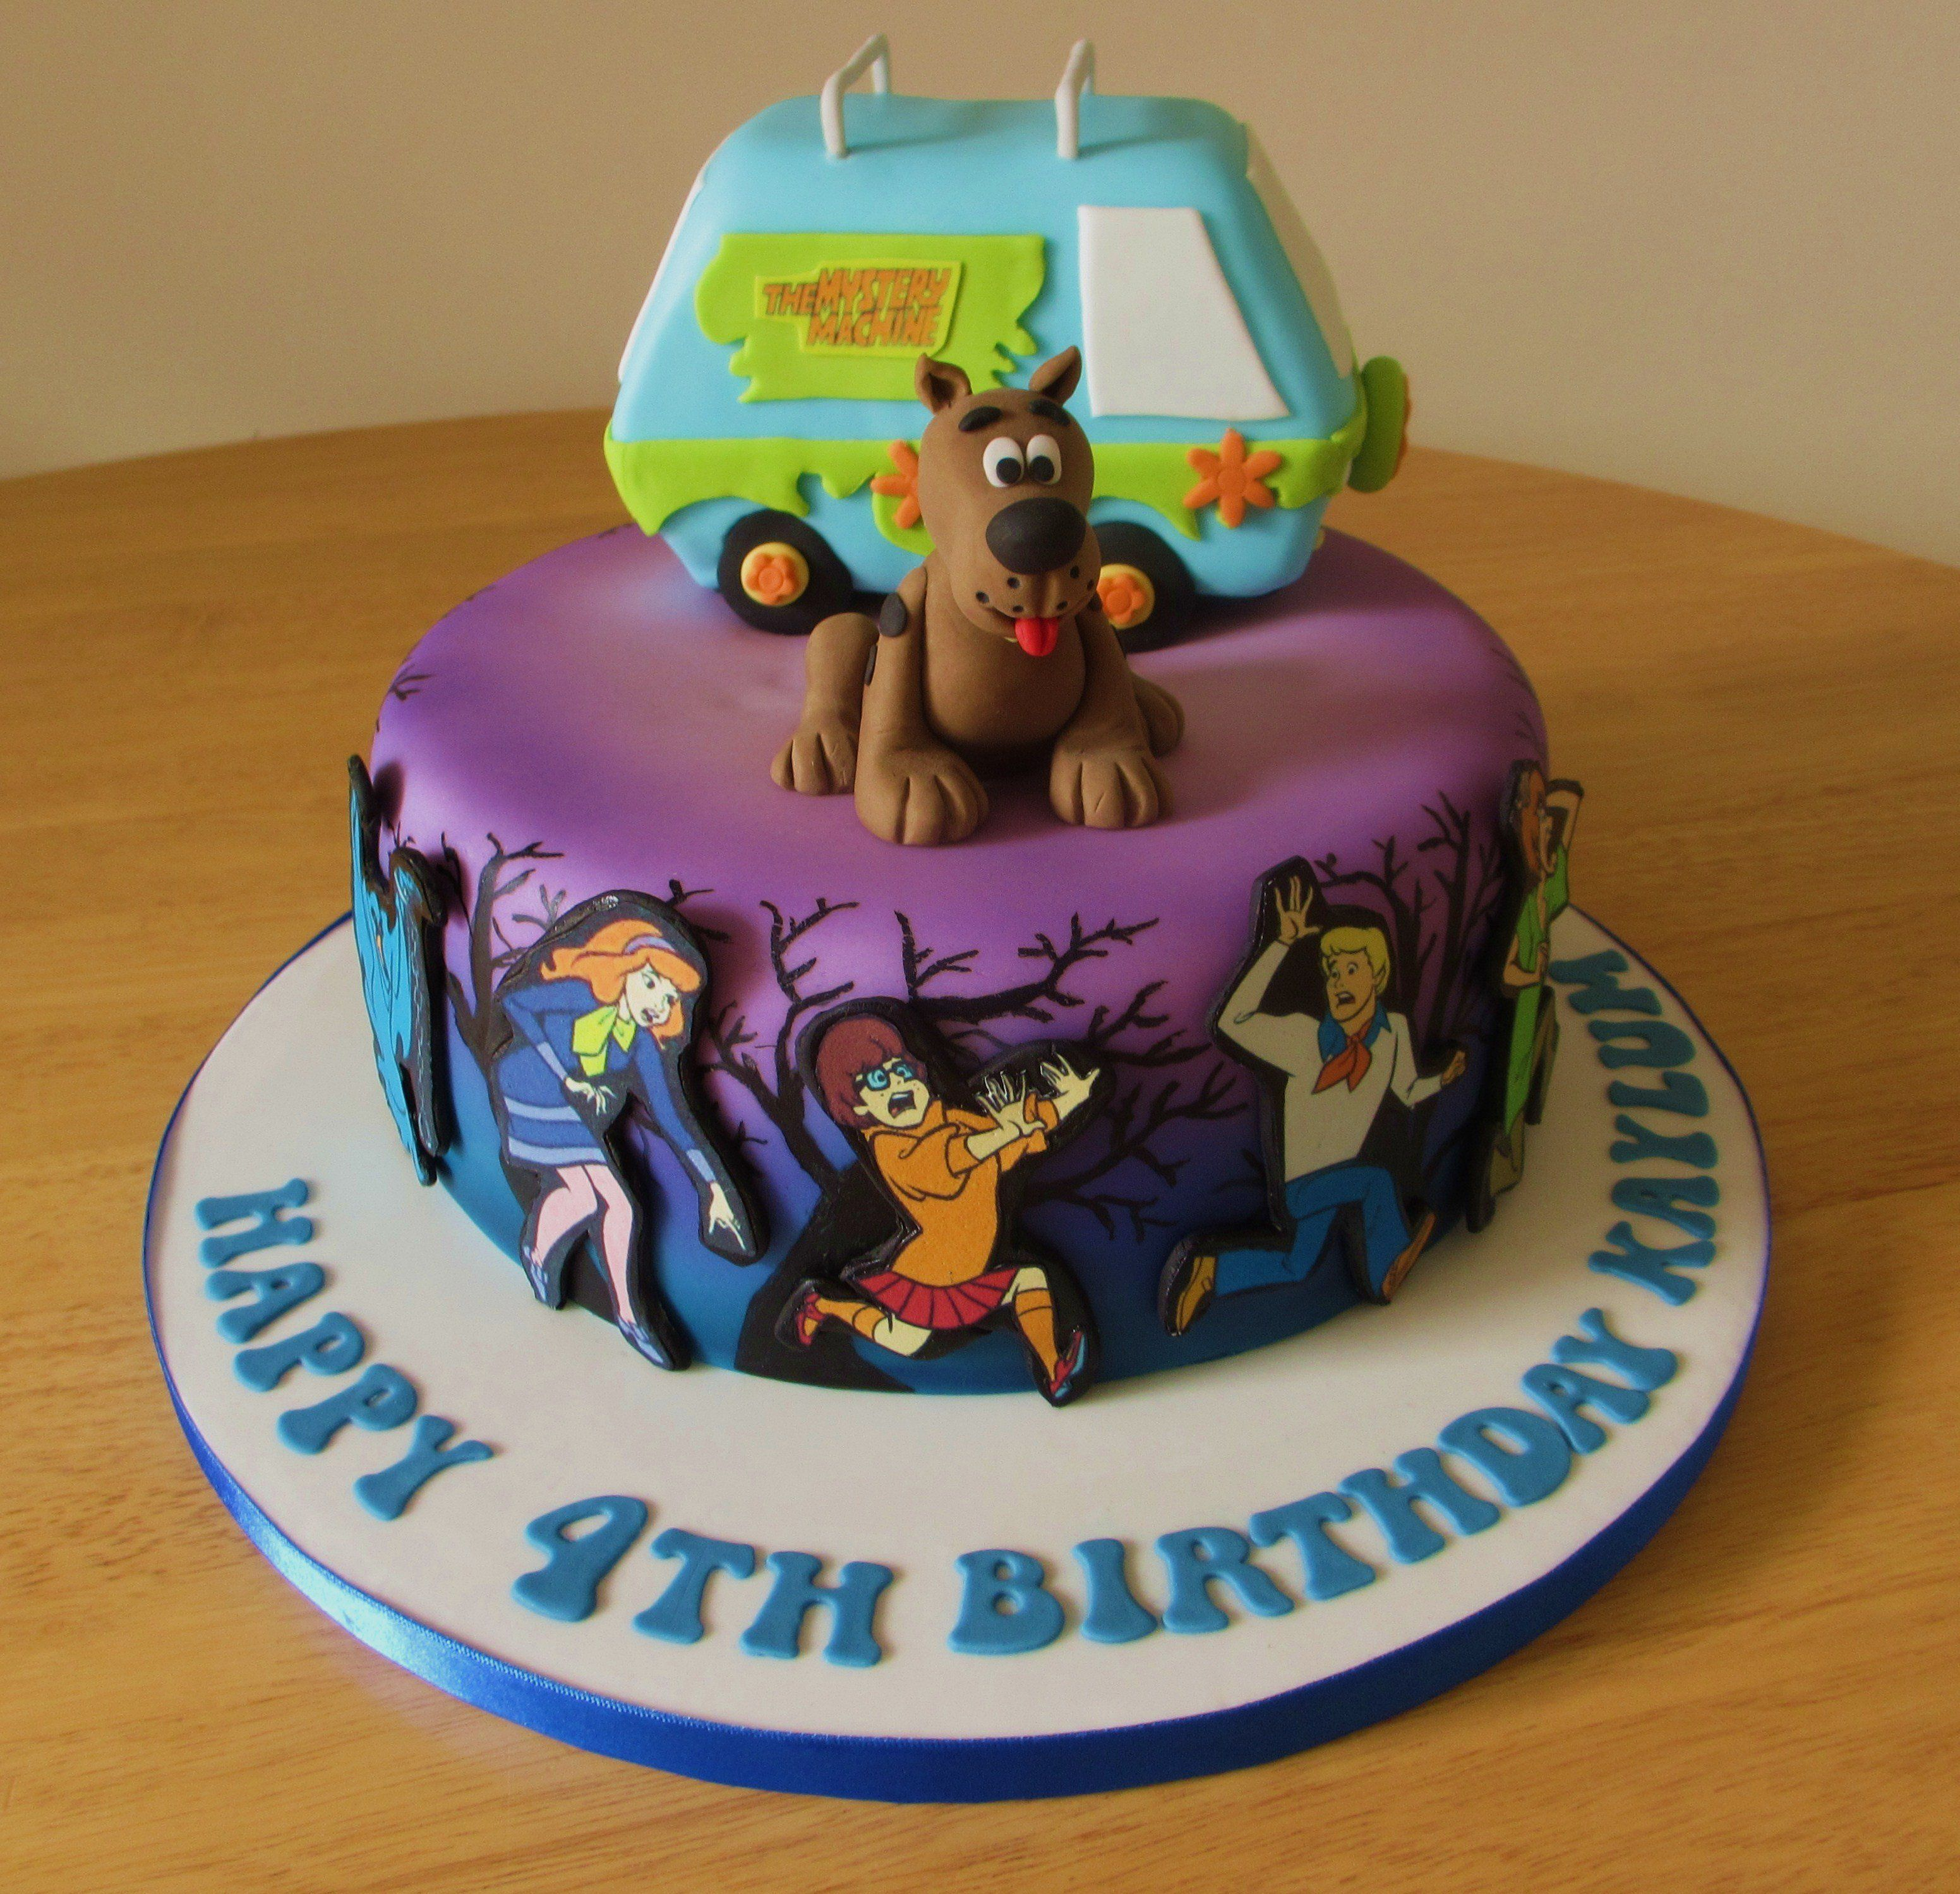 Sensational Scooby Doo Cake With Mystery Van Airbrushed Blue And Purple Funny Birthday Cards Online Alyptdamsfinfo